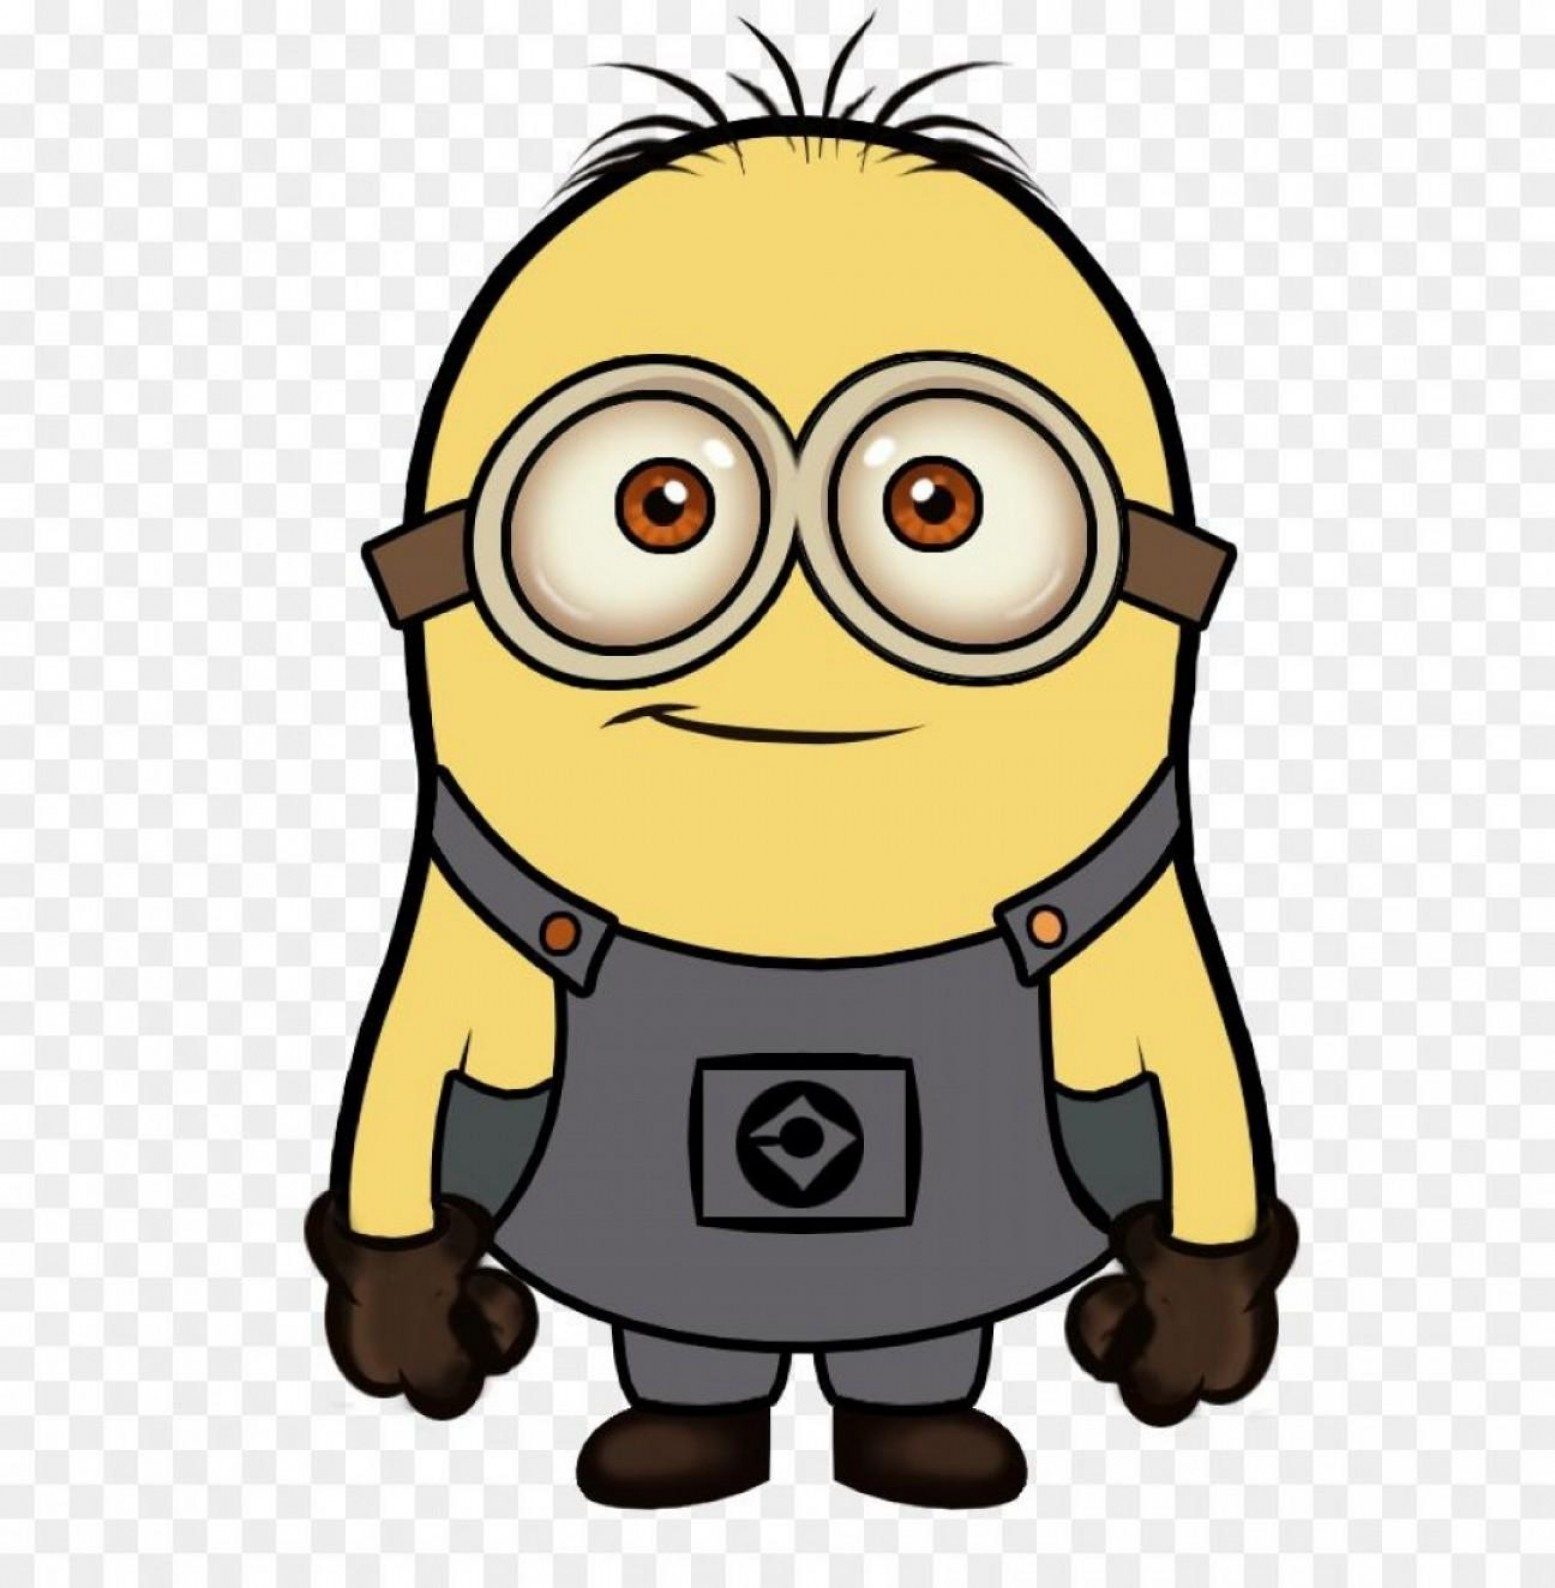 Minion From Despicable Me 2 Vector Image: Hd Despicable Me Minions Drawing Vector Cdr